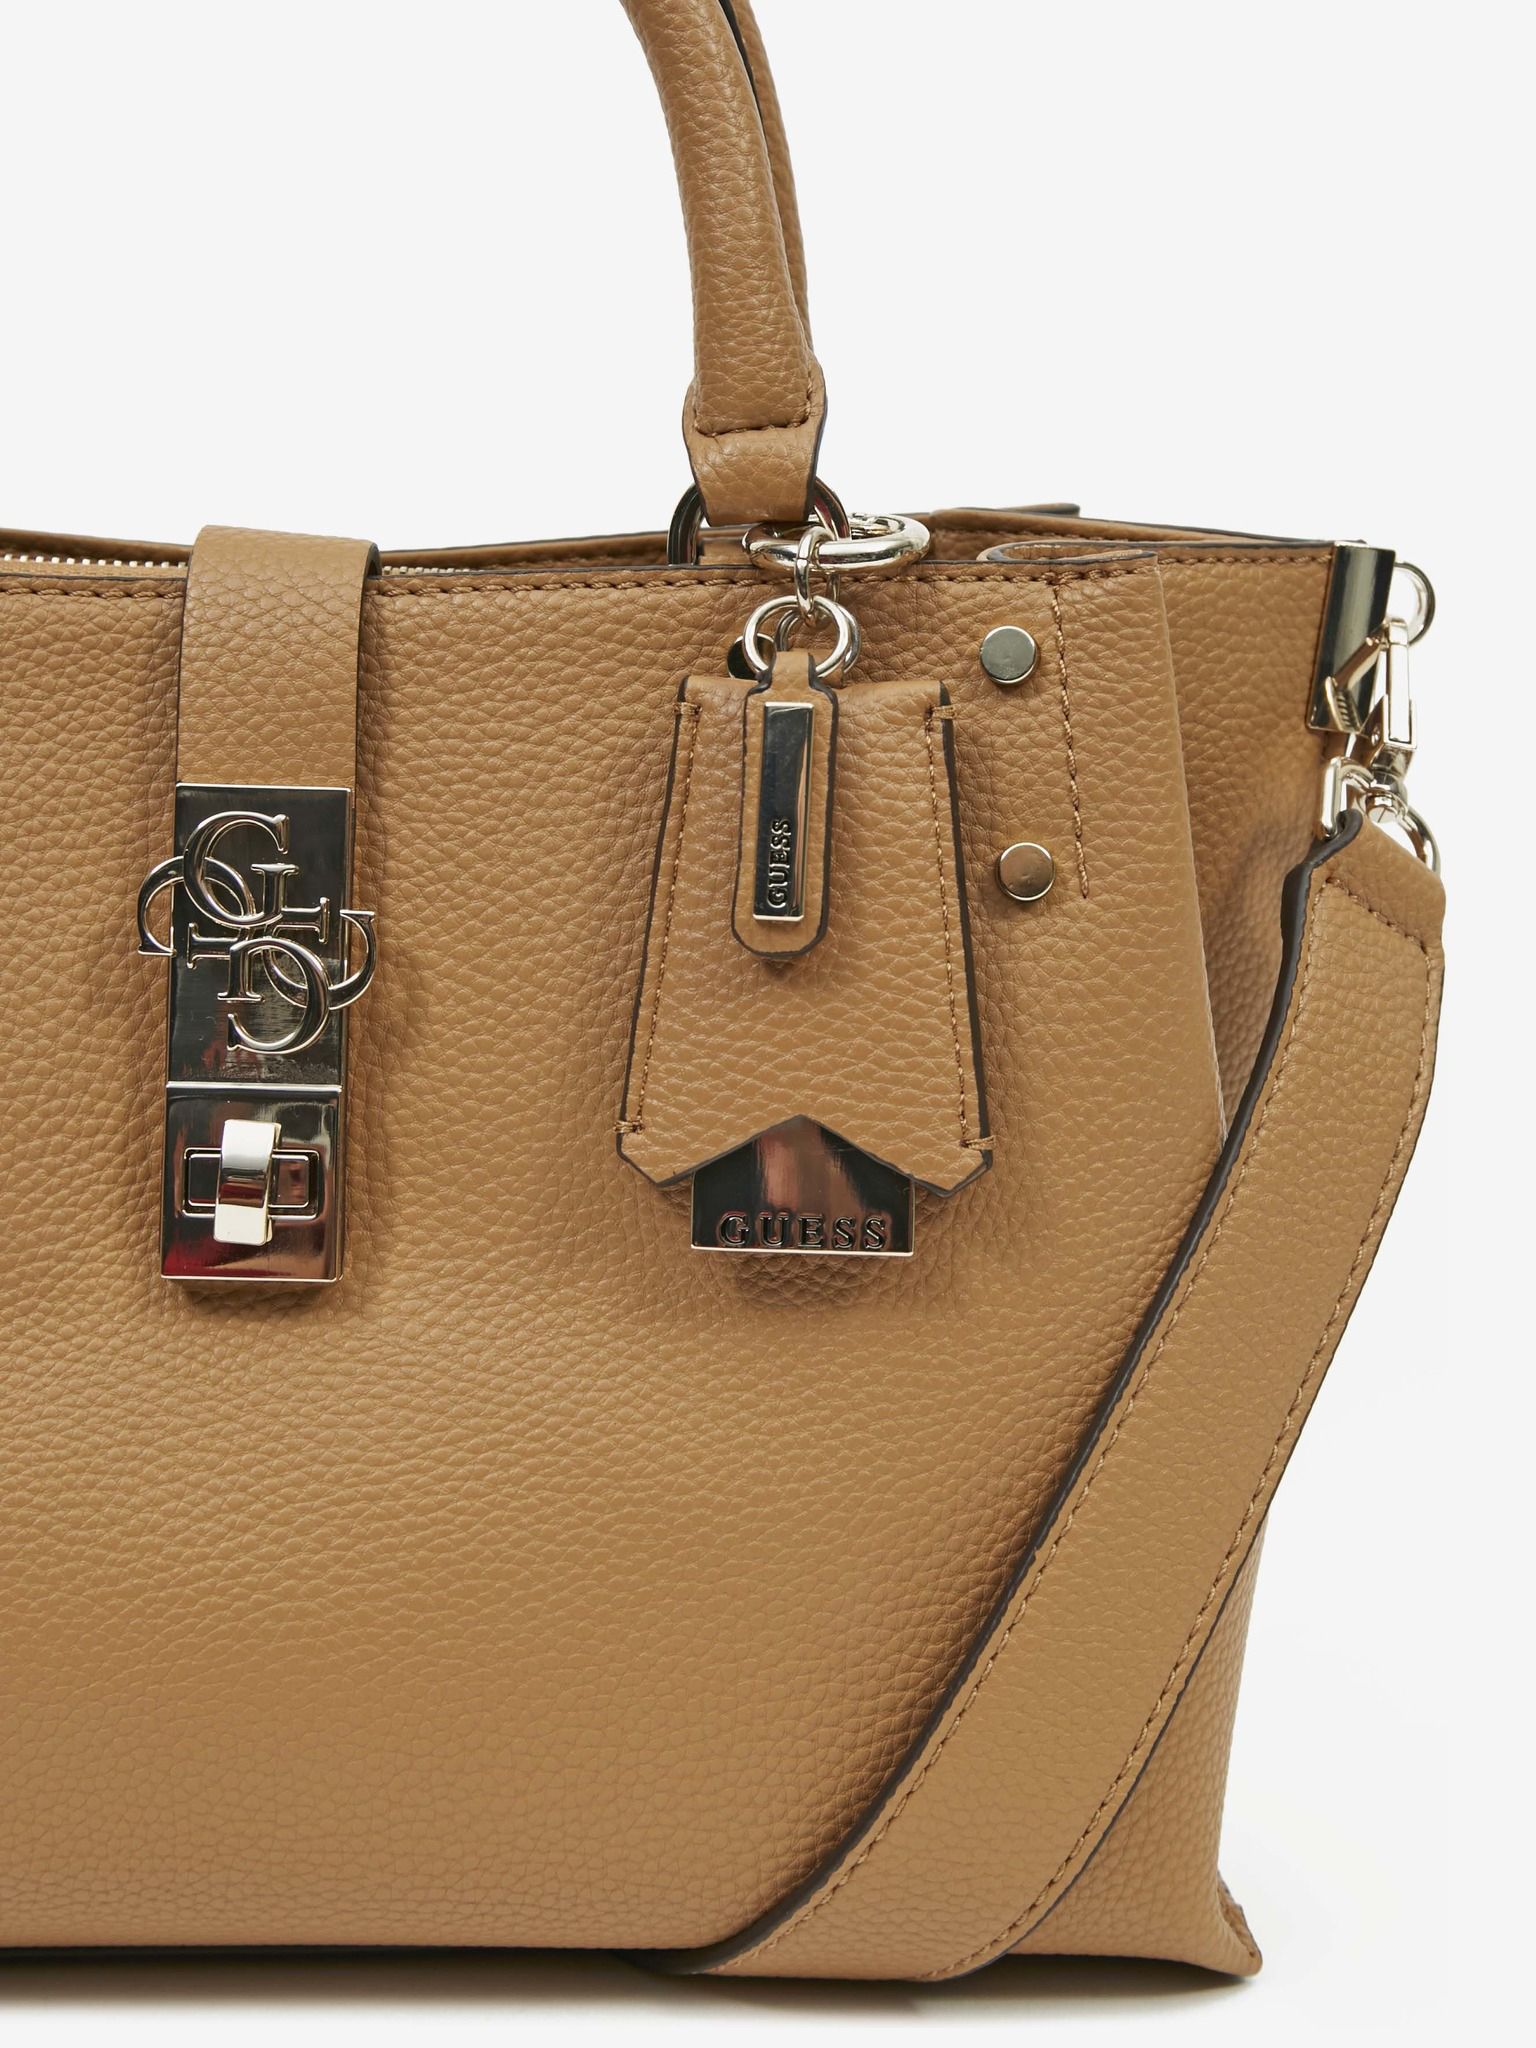 Guess Women's bag brown  Small